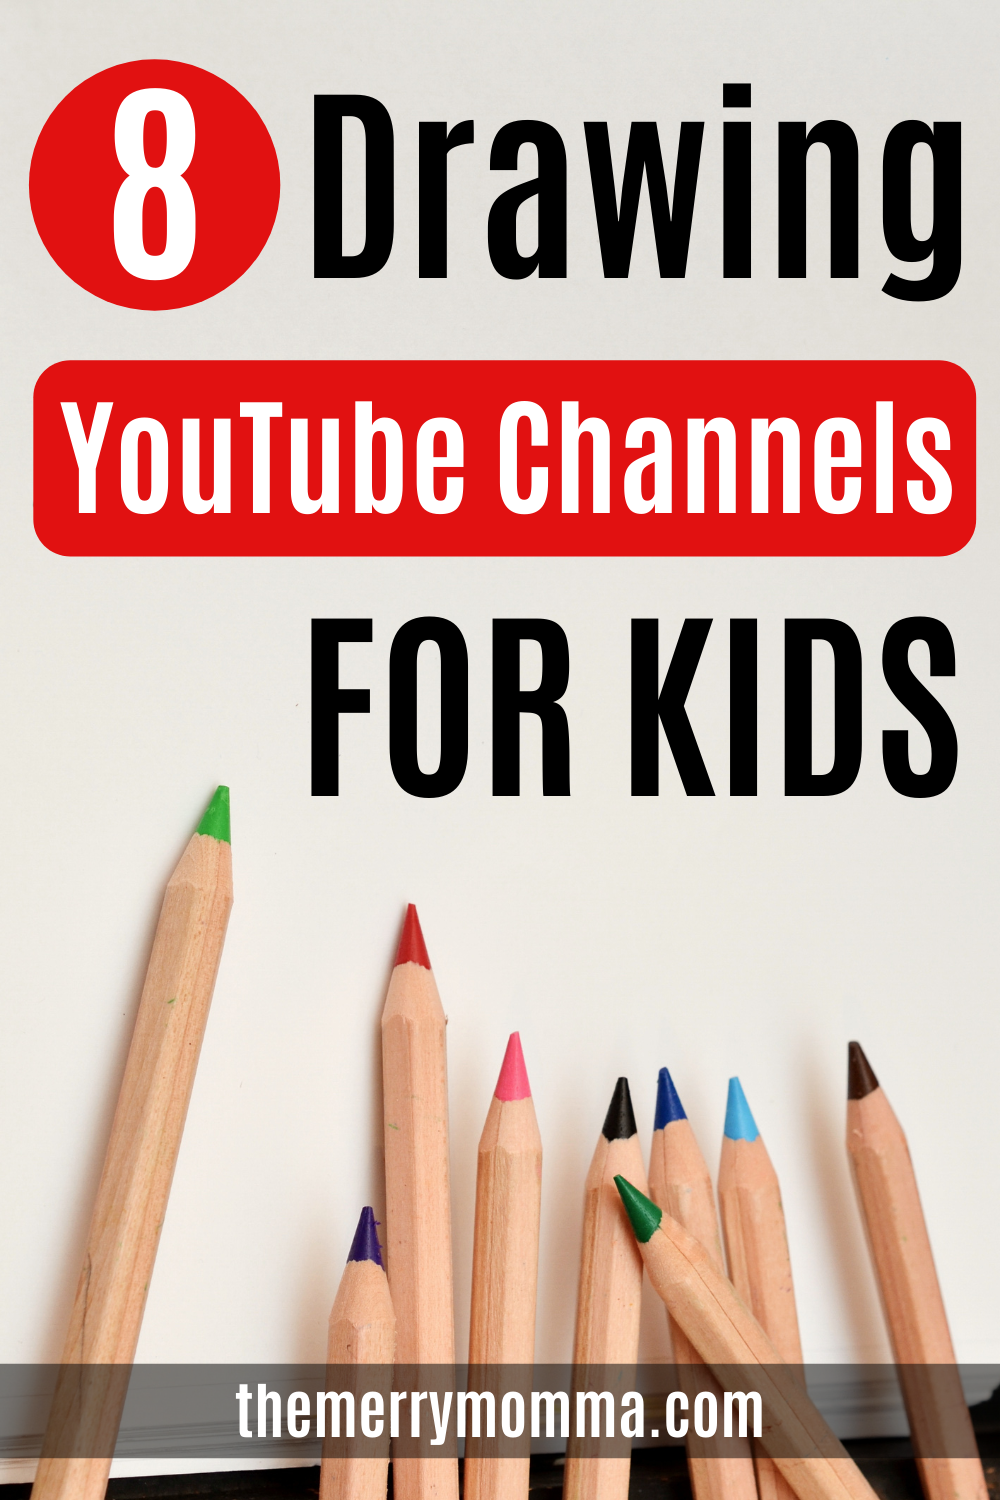 8 Drawing YouTube Channels For Kids